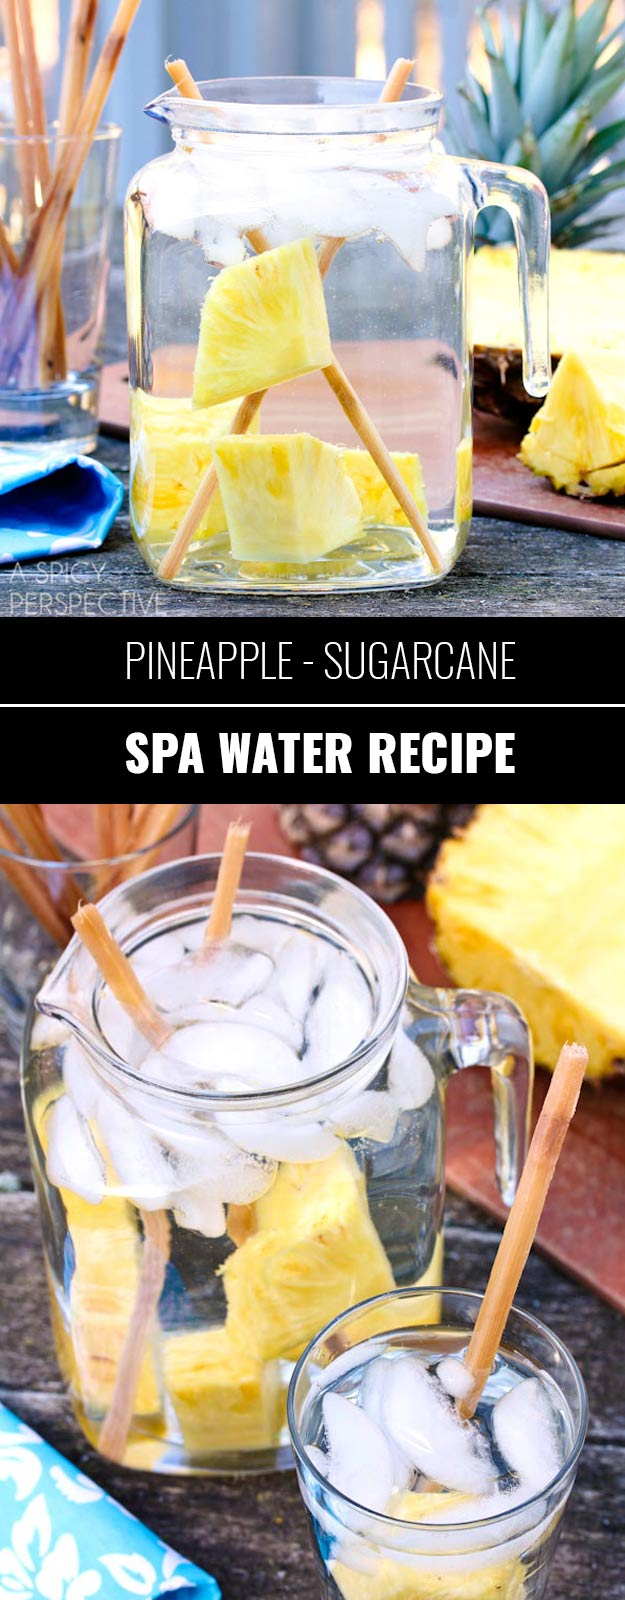 31 Detox Water Recipes for Drinks To Cleanse Skin and Body. Easy to Make Waters and Tea Promote Health, Diet and Support Weight loss | Pineapple Sugarcane Detox Water - Drink Recipe #detox #recipes #detoxwater #healthy